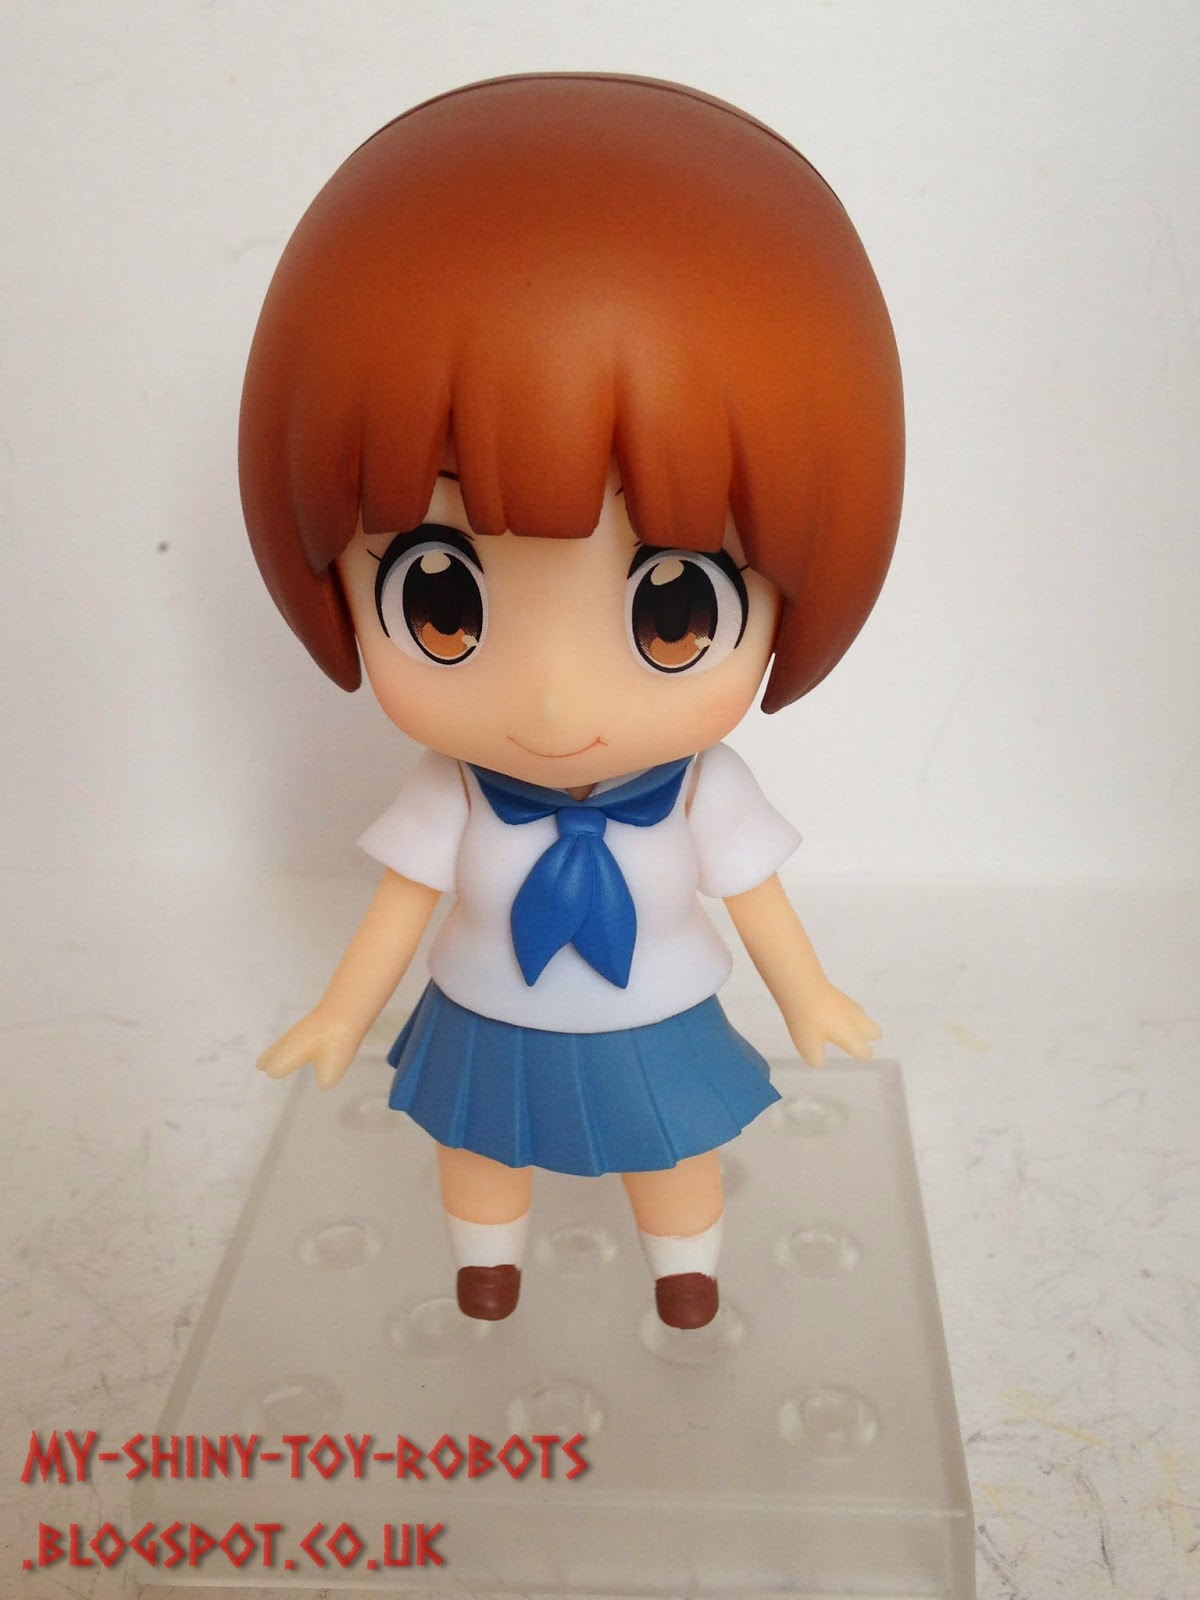 Born to be a Nendoroid